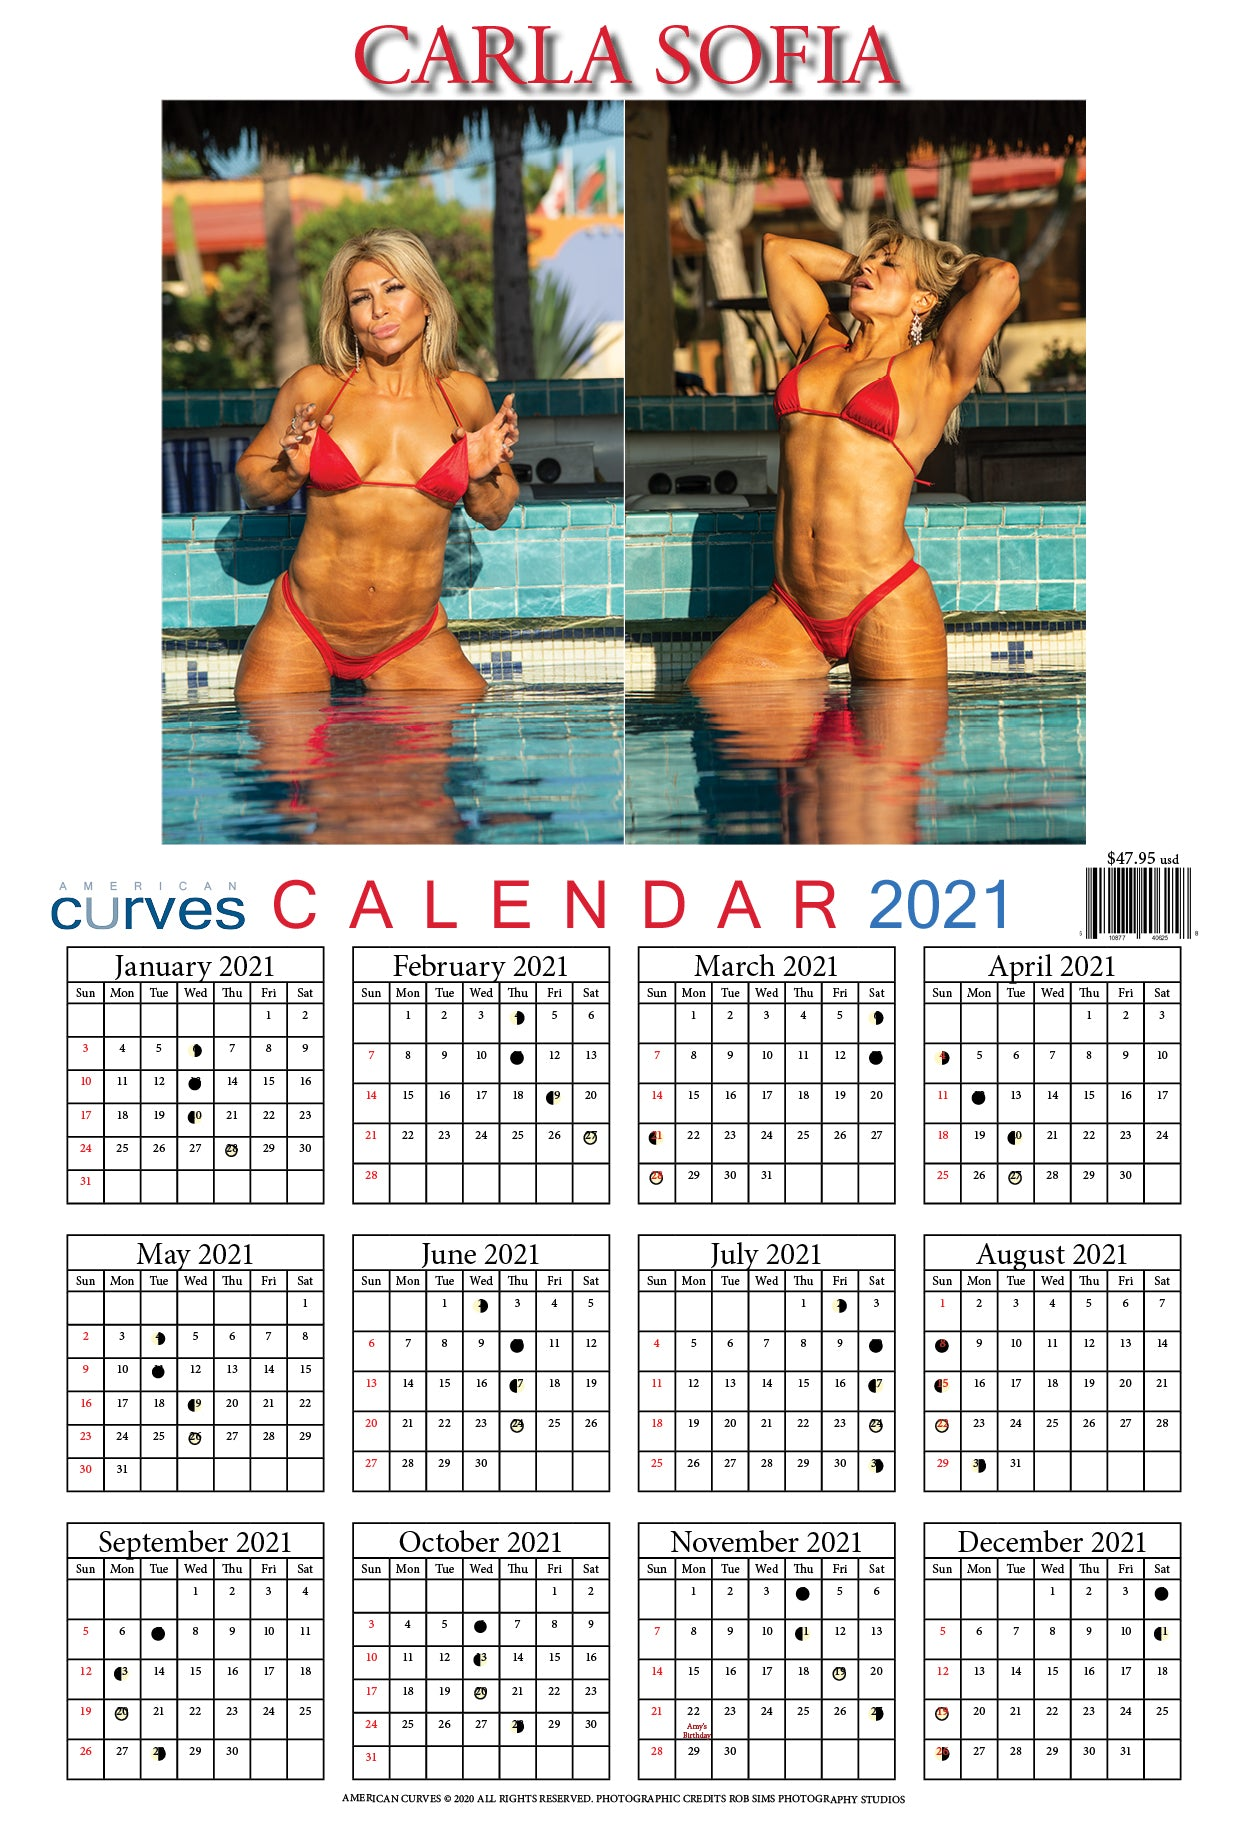 Carla Sofia-13x19 in. 2021 Wall Calendar on high-quality paper